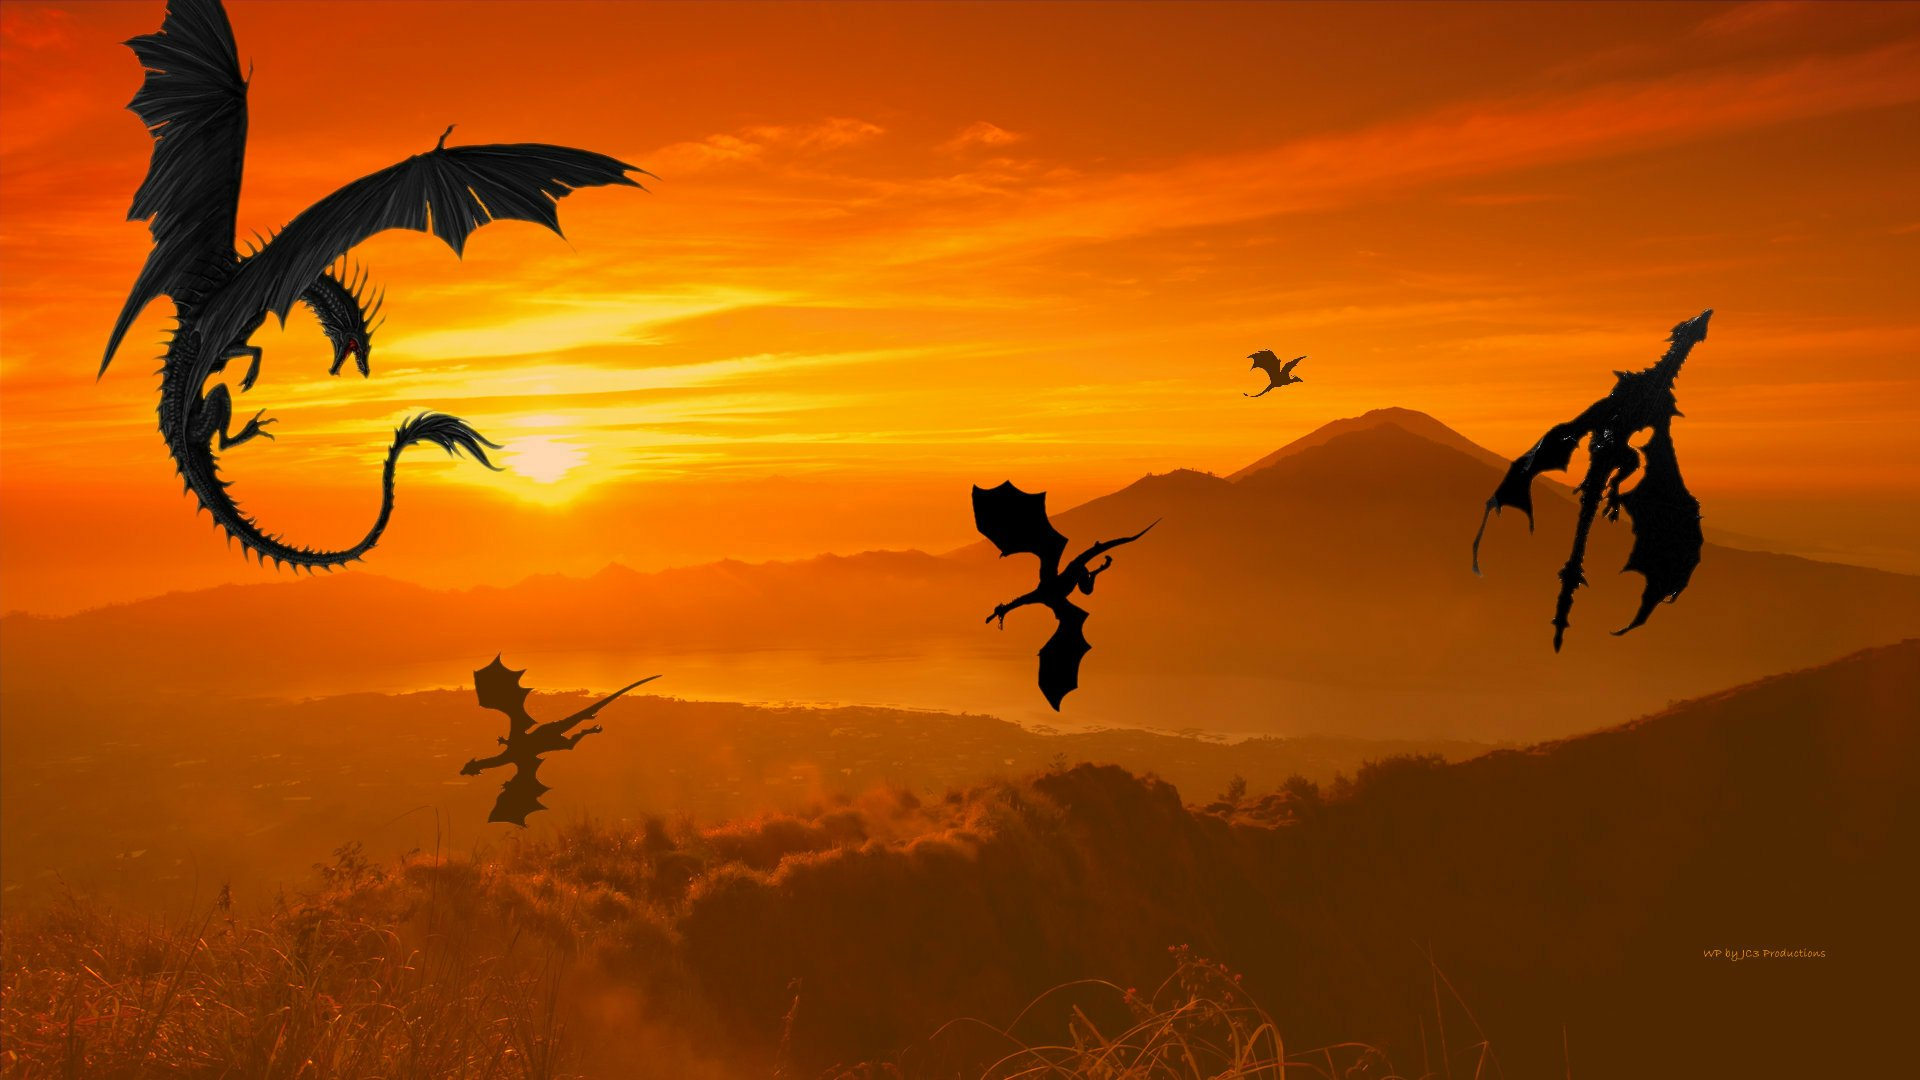 Sunset Dragon by Shynzo-Nai on DeviantArt |Dragons And Sunsets